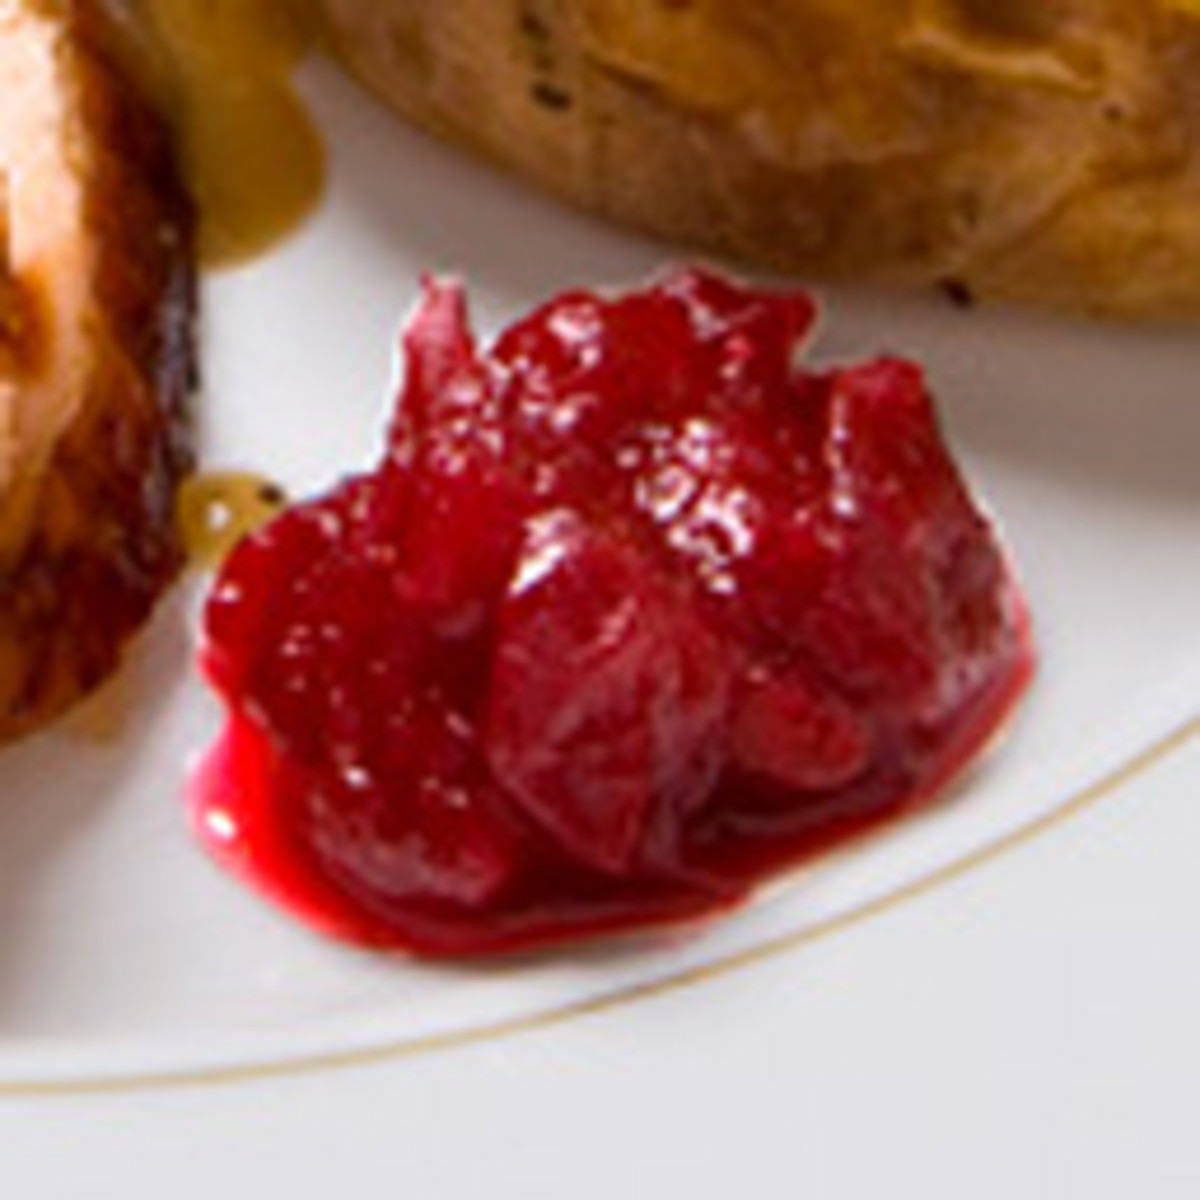 Guiltless Apricot Cranberry Sauce